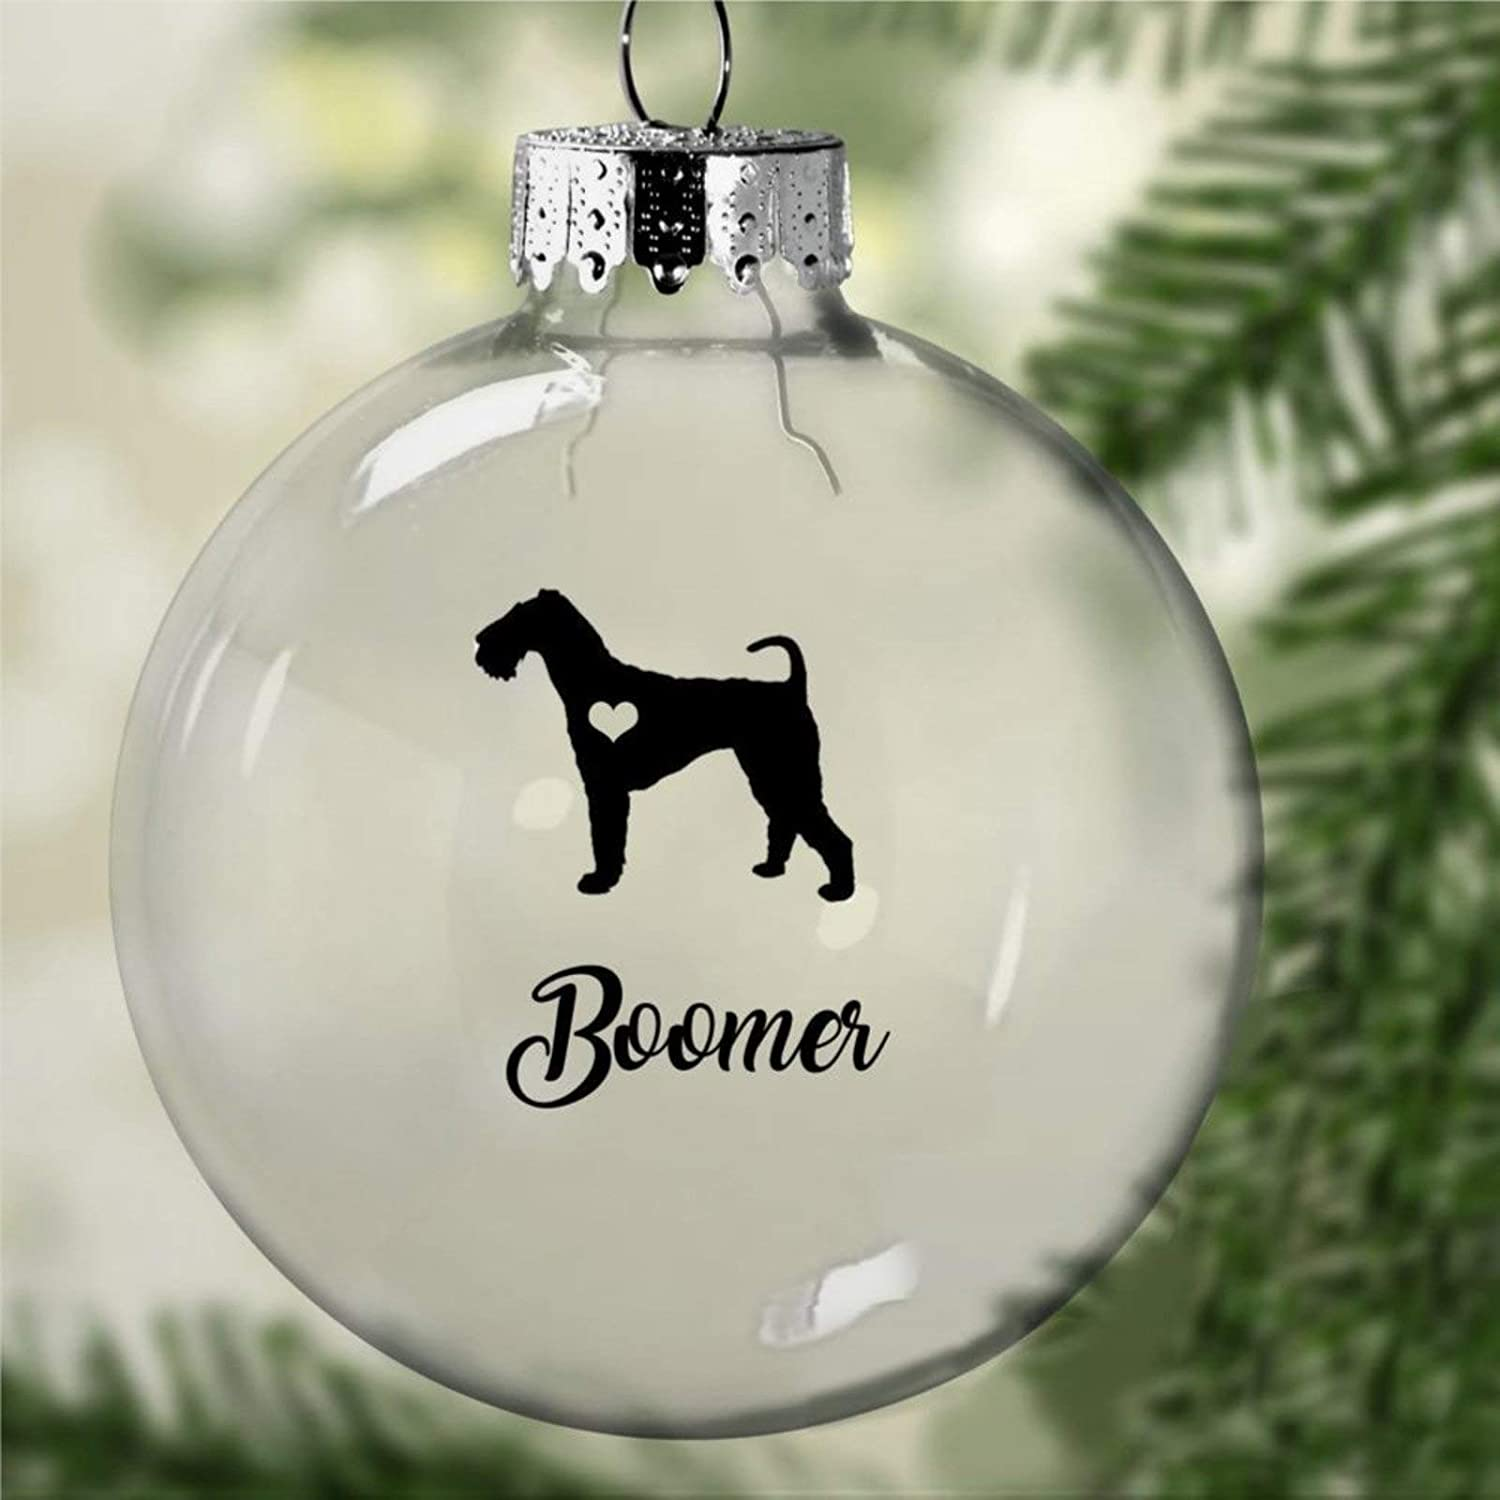 DONL9BAUER Christmas Balls Ornaments Airedale Terrier Hanging Ball for Xmas Tree Personalized Dog Lover Shatterproof Christmas Decorations for Holiday Wedding Party